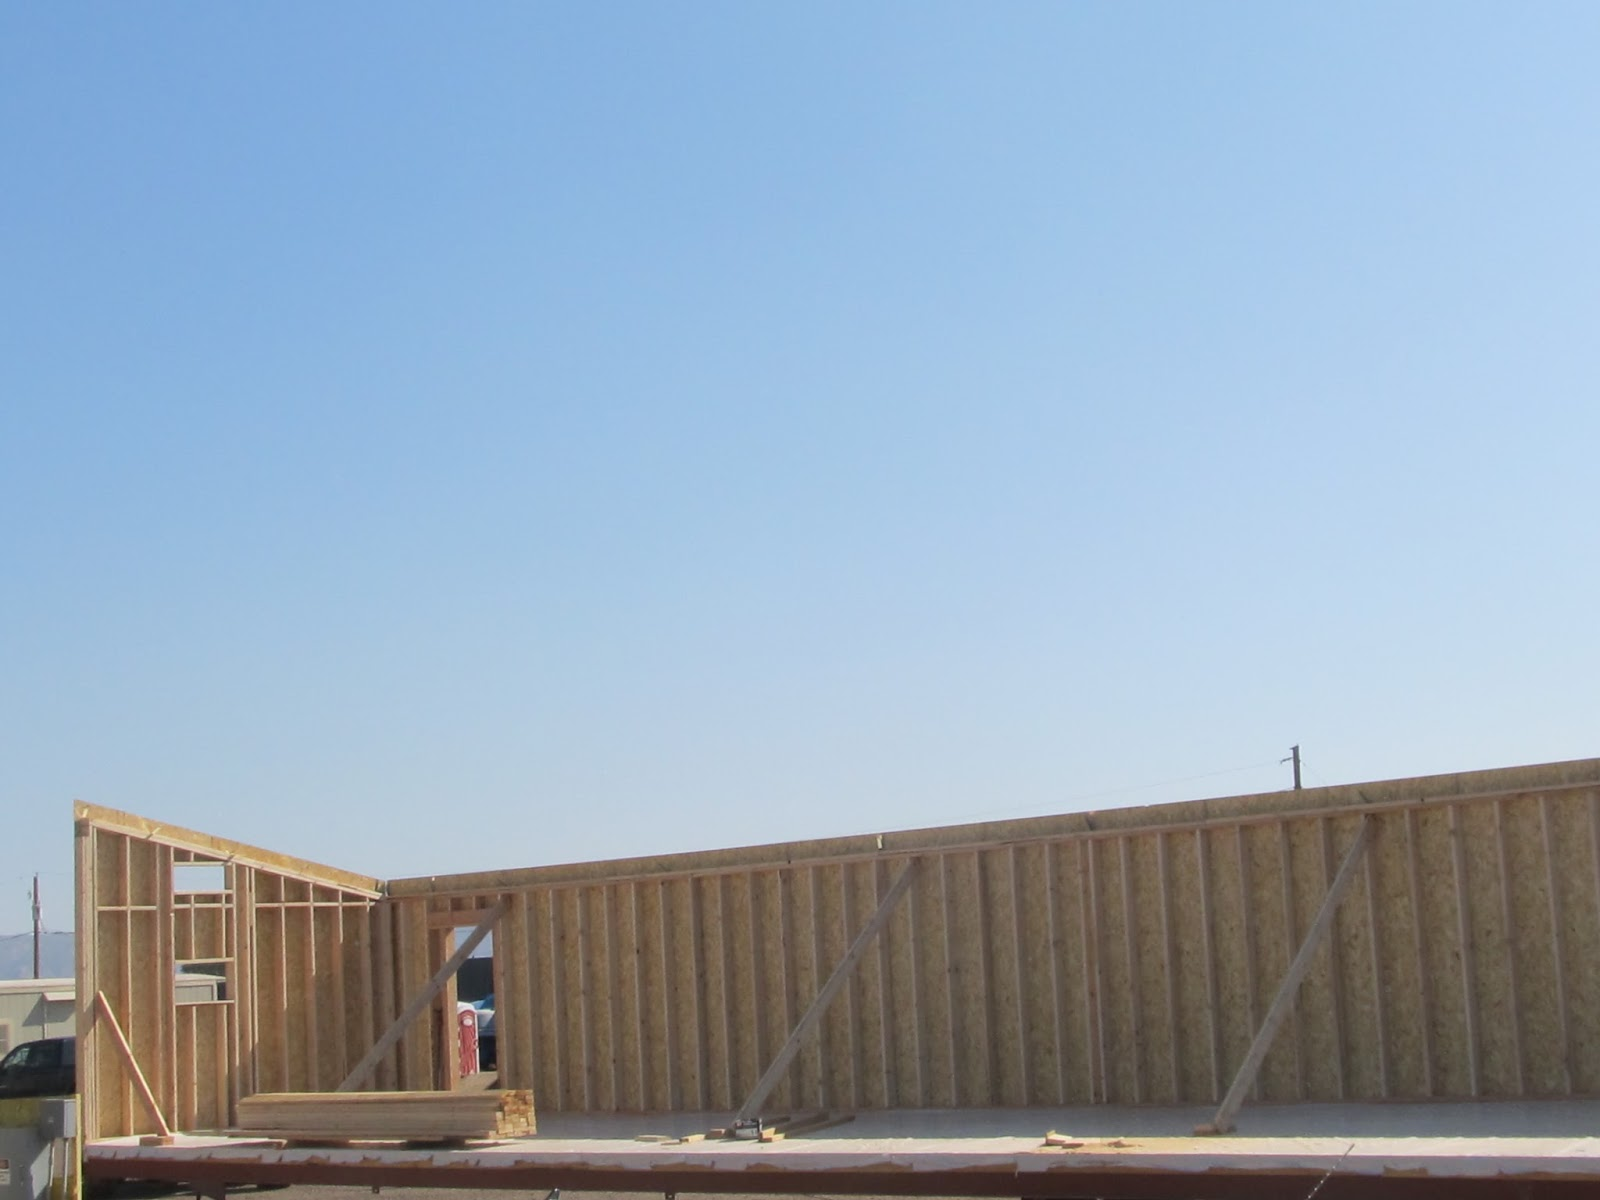 2x6 Wall Framing Construction : Modular solutions ltd the experts on prefabricated